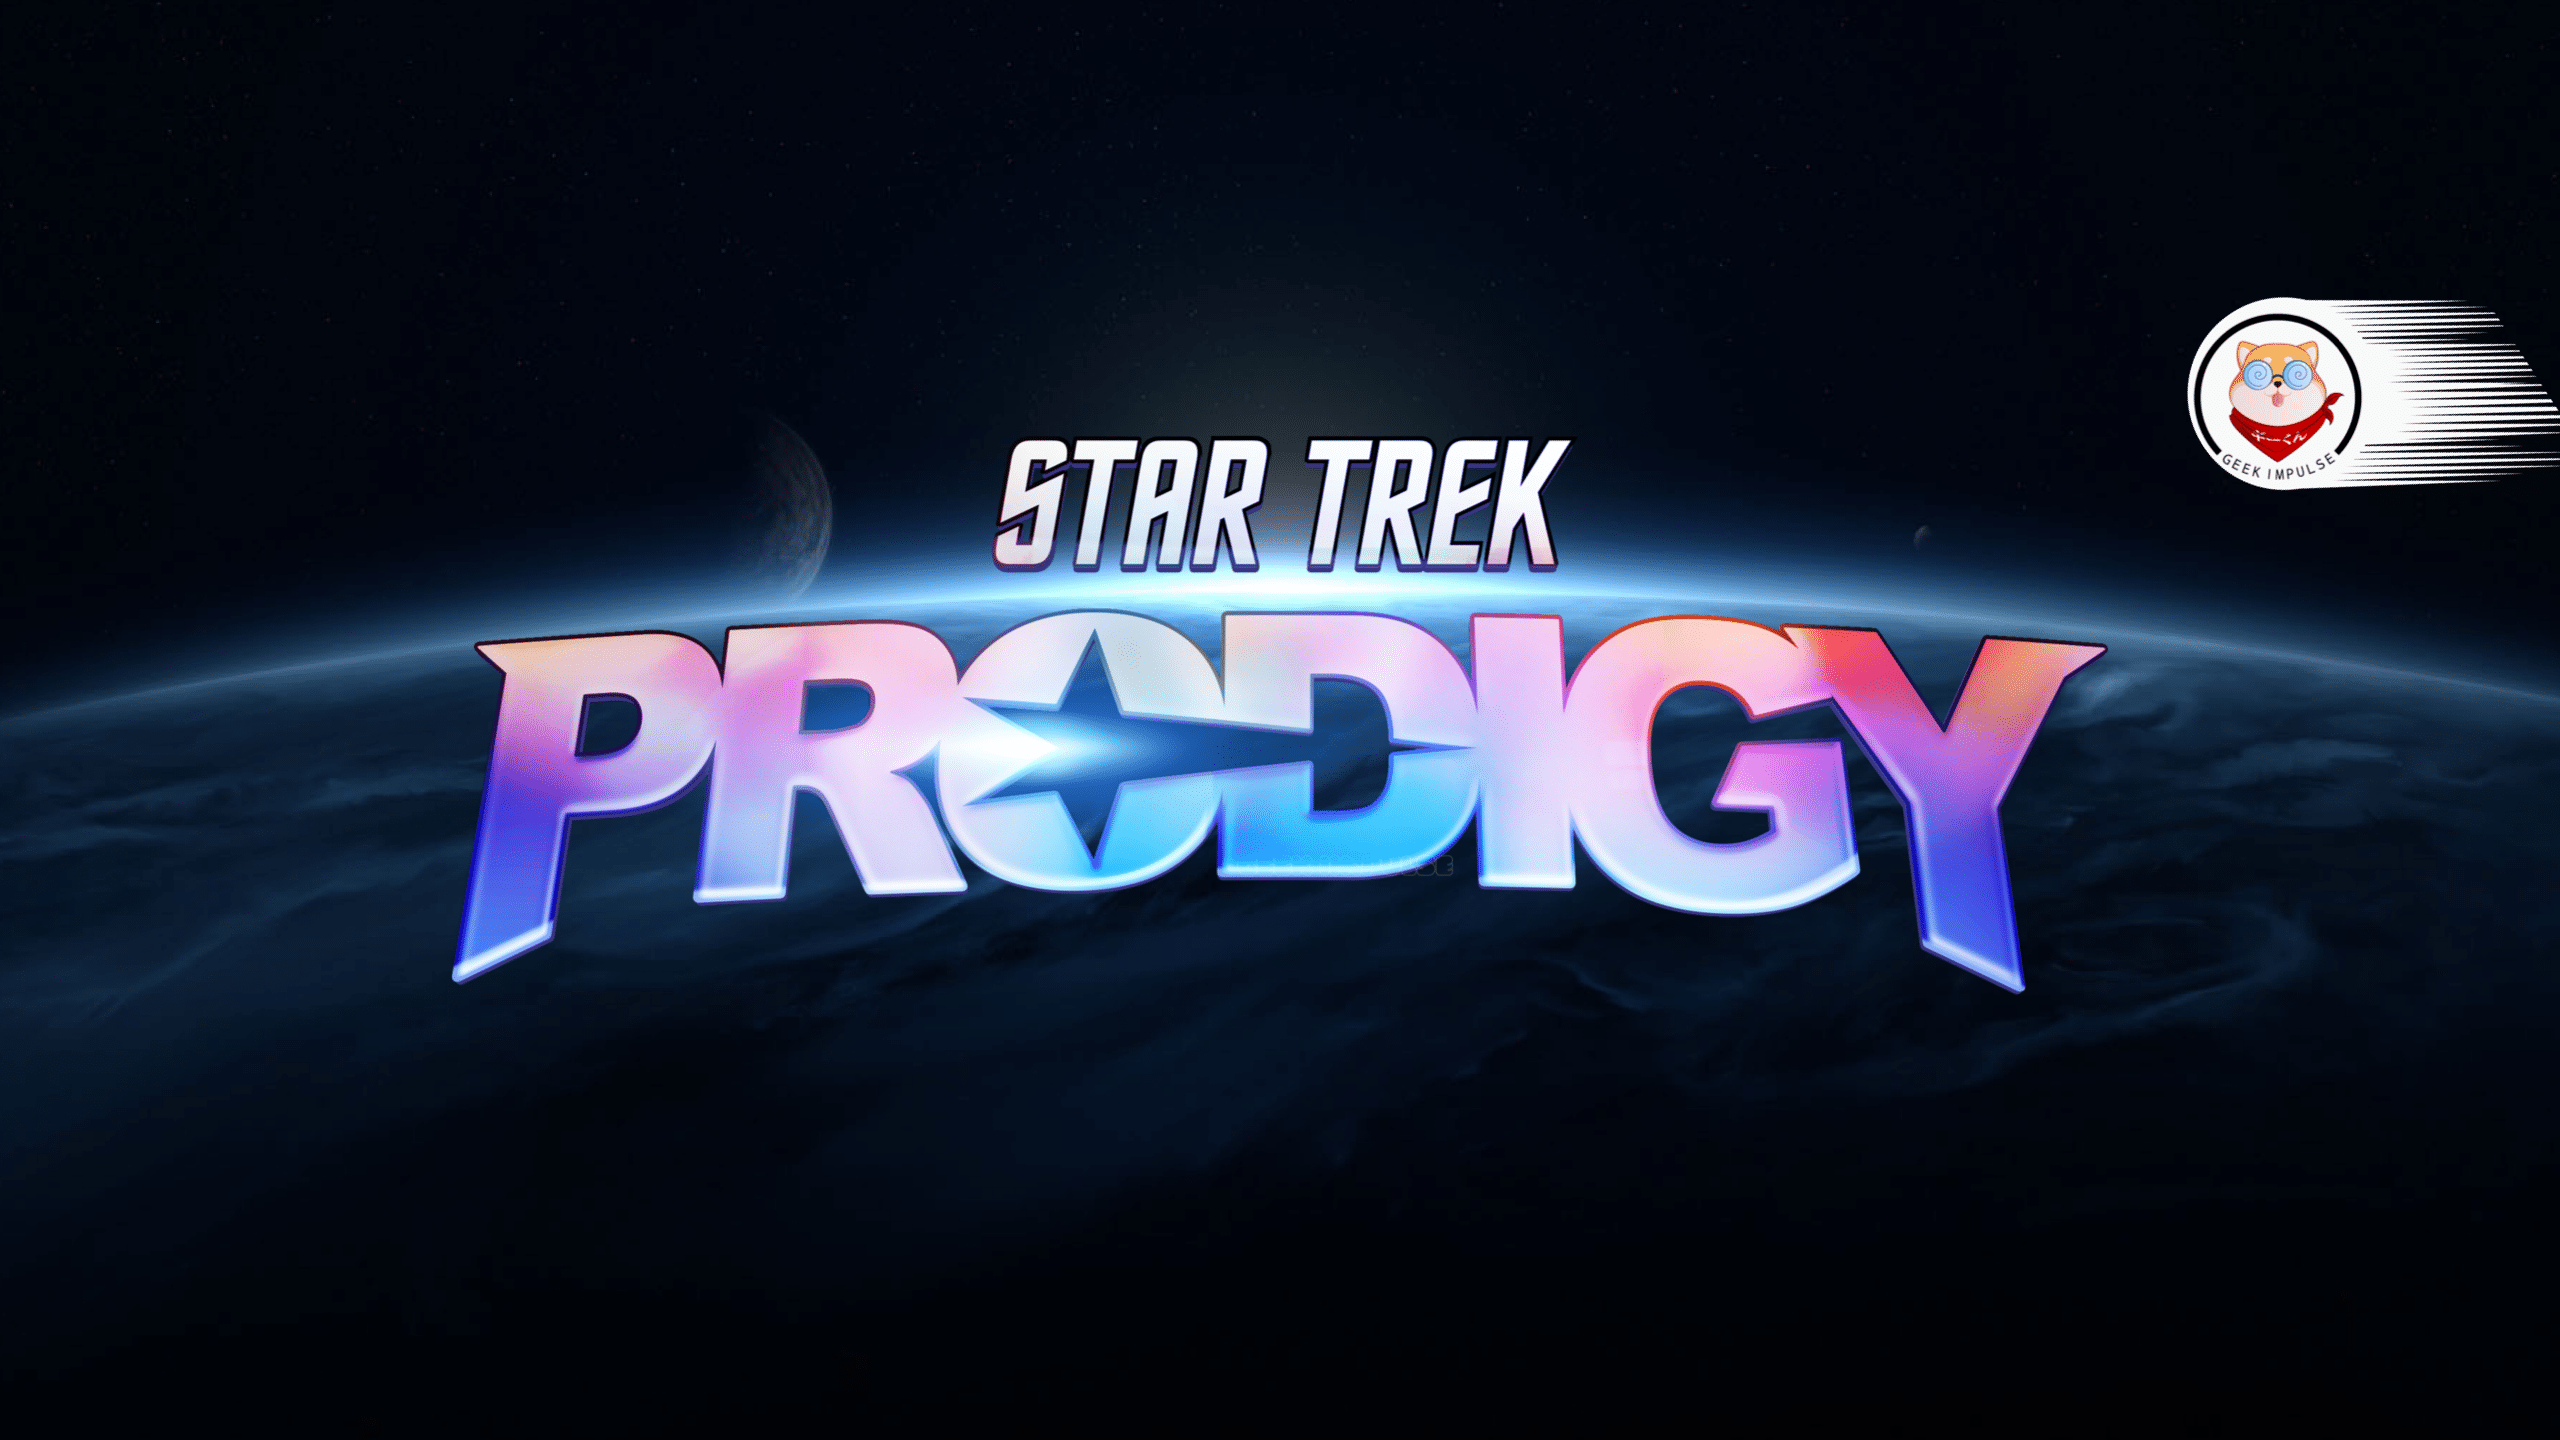 Star Trek Prodigy The New Geeky Show For Kids on Paramount Plus. 10 Episodes